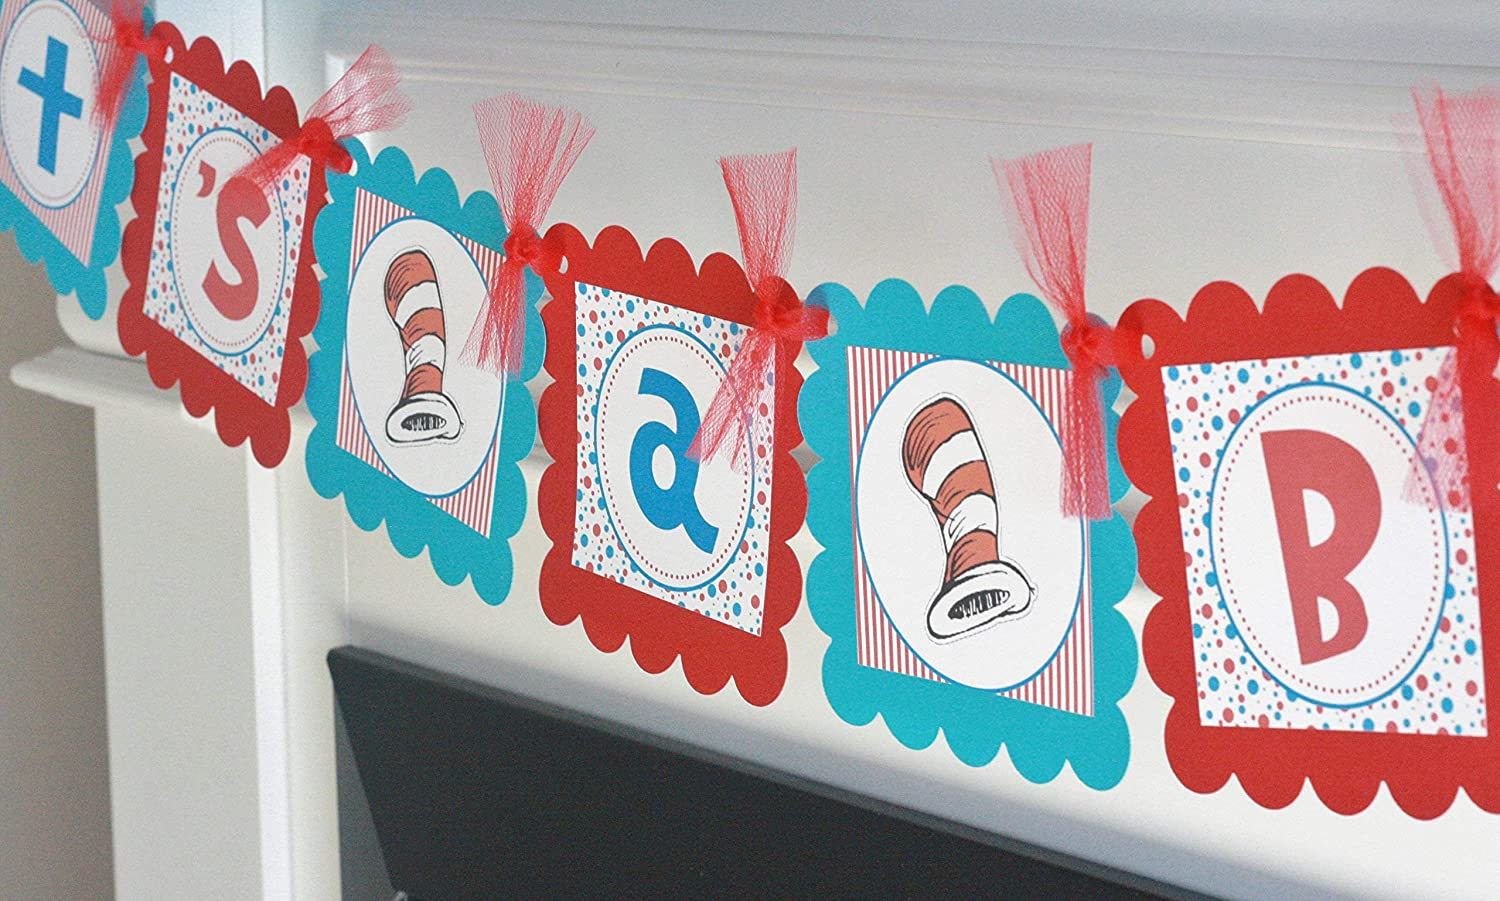 Red Blue Turquoise Blue Stripe Cat in the Hat Seuss DotIt's a Boy orIt's a Girl Banner - Party Packs Available - Matching Items Available